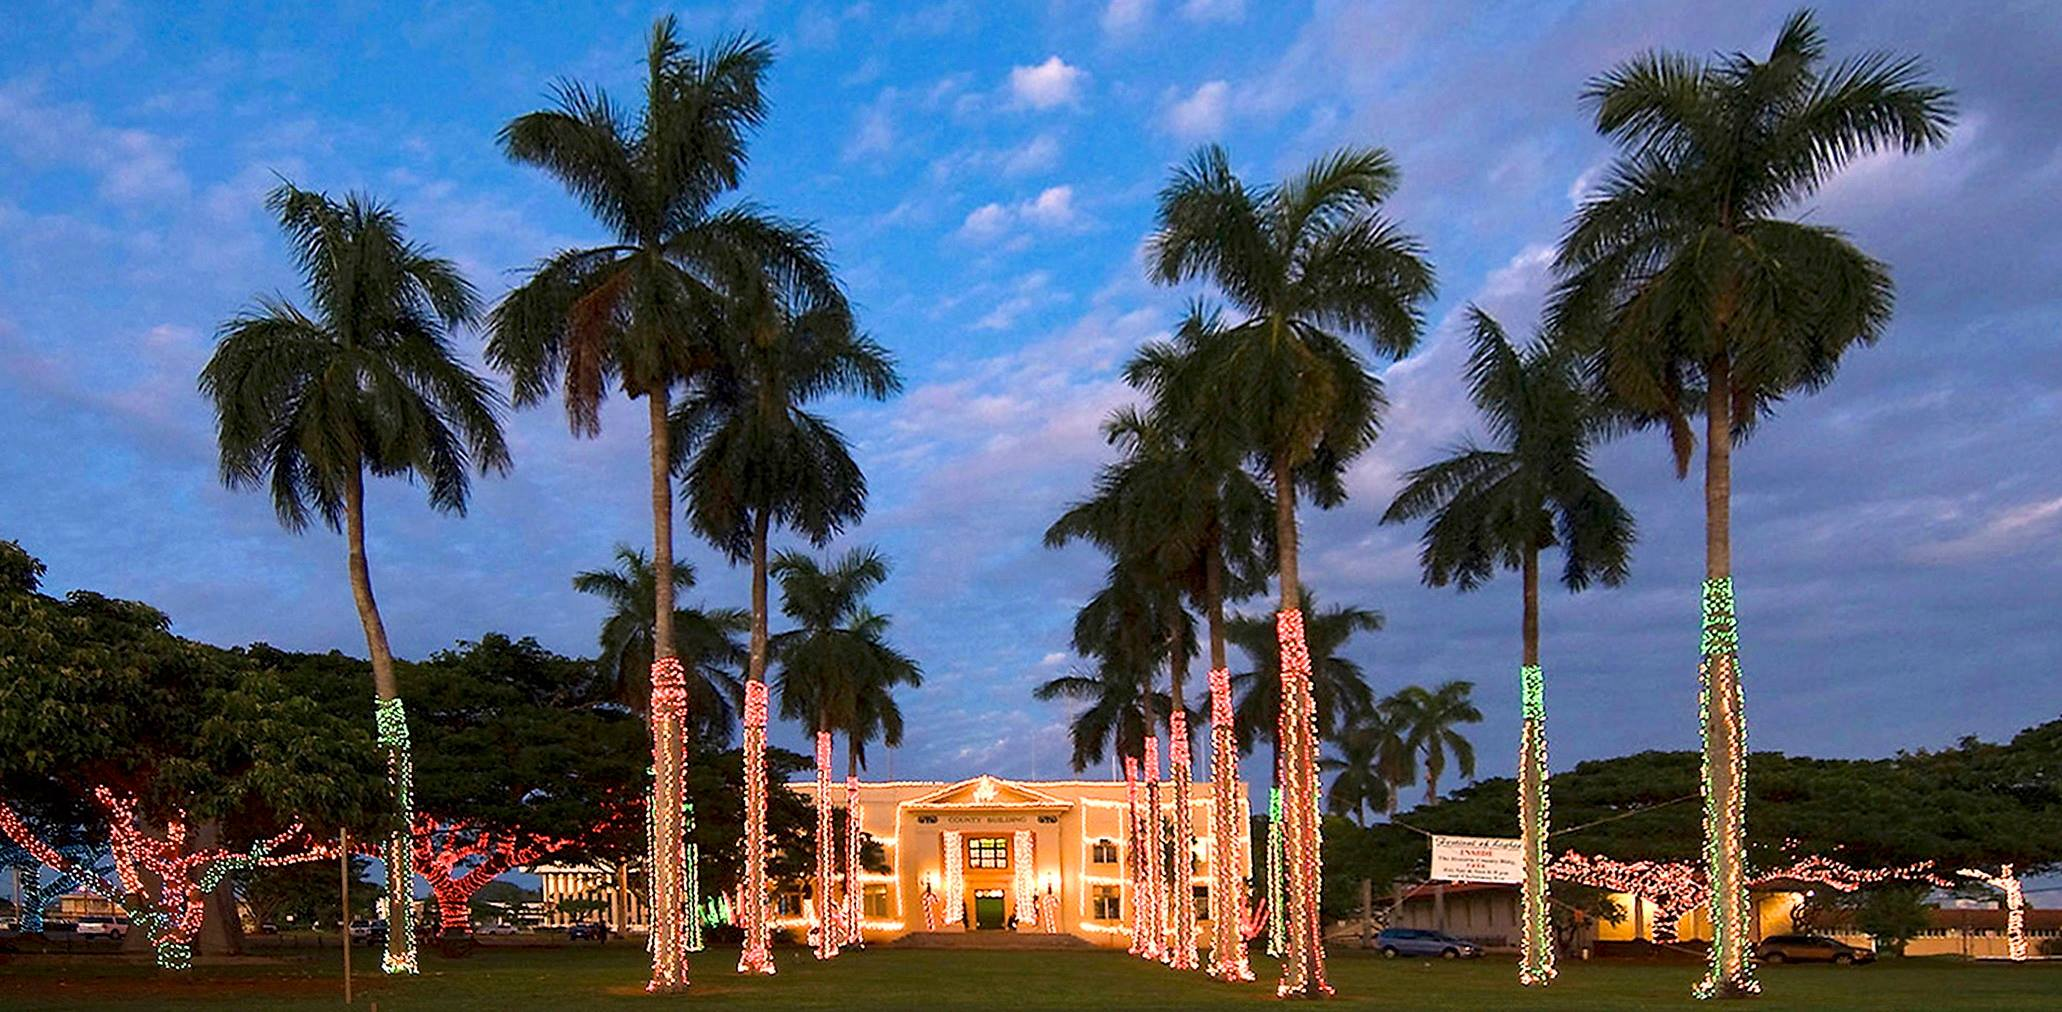 The 10 Most Magical Christmas Towns In Hawaii